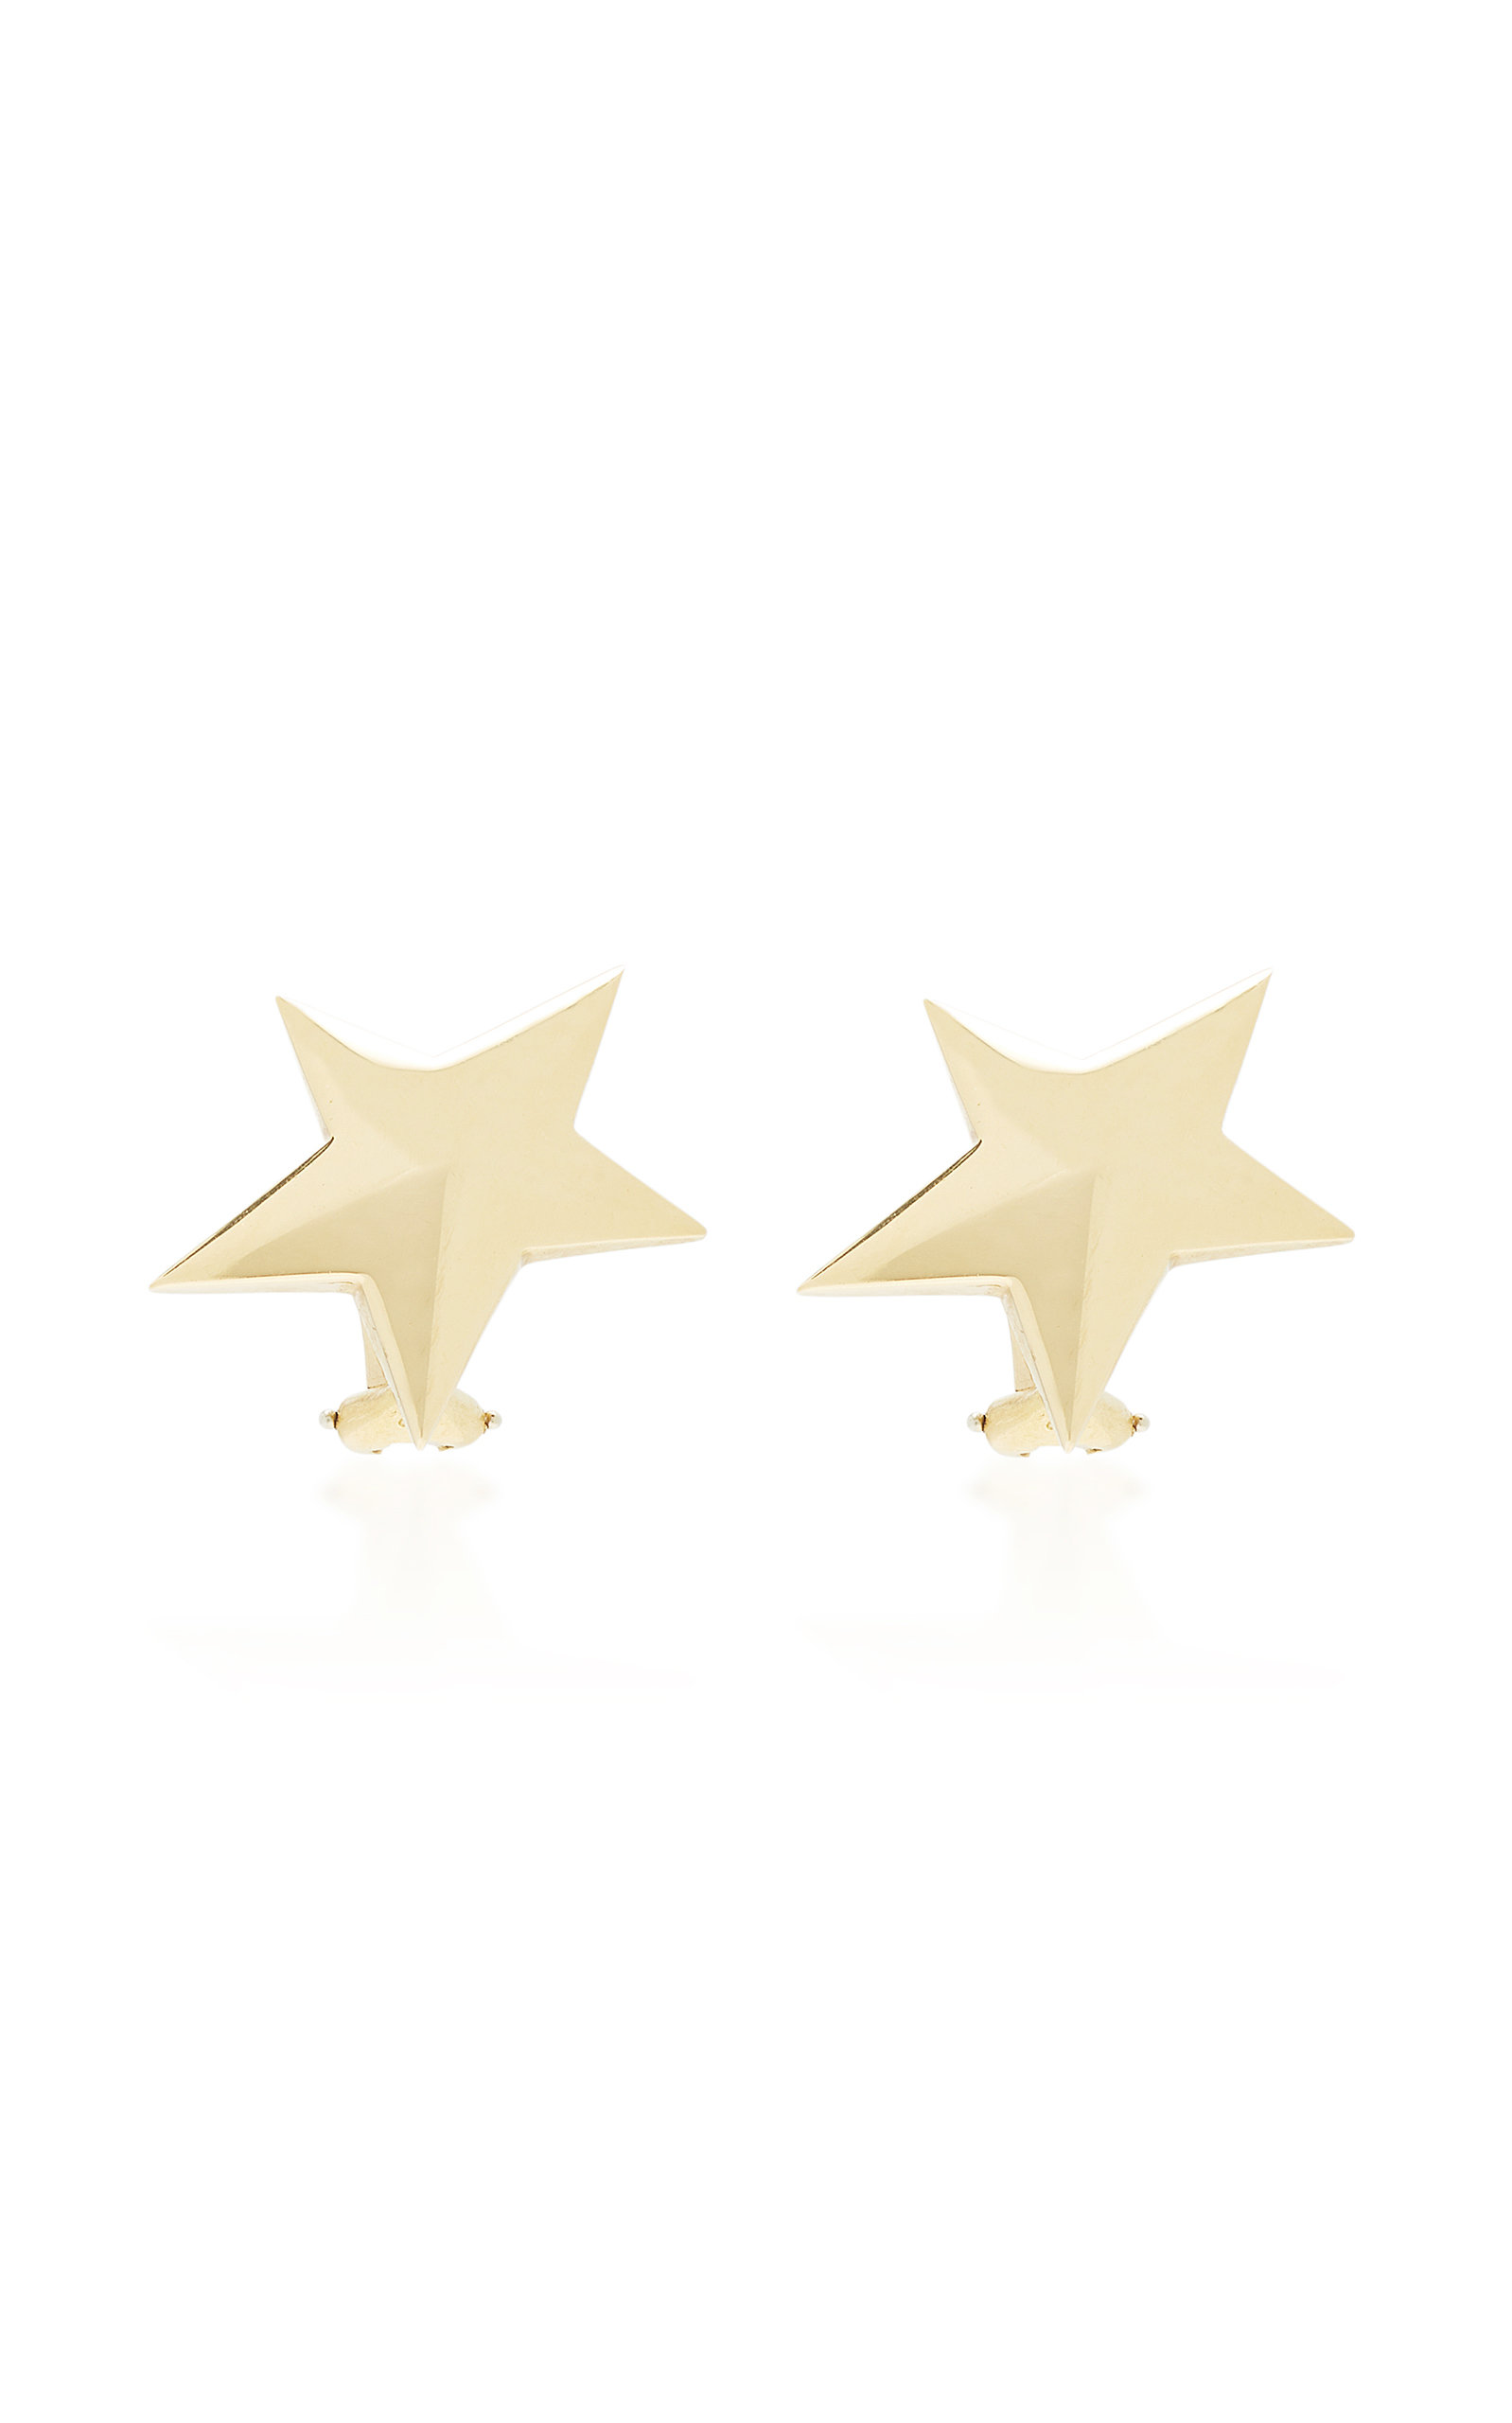 MAHNAZ COLLECTION LIMITED EDITION 18K GOLD STAR EARRINGS BY ANGELA CUMMINGS FOR TIFFANY & CO. C.1980